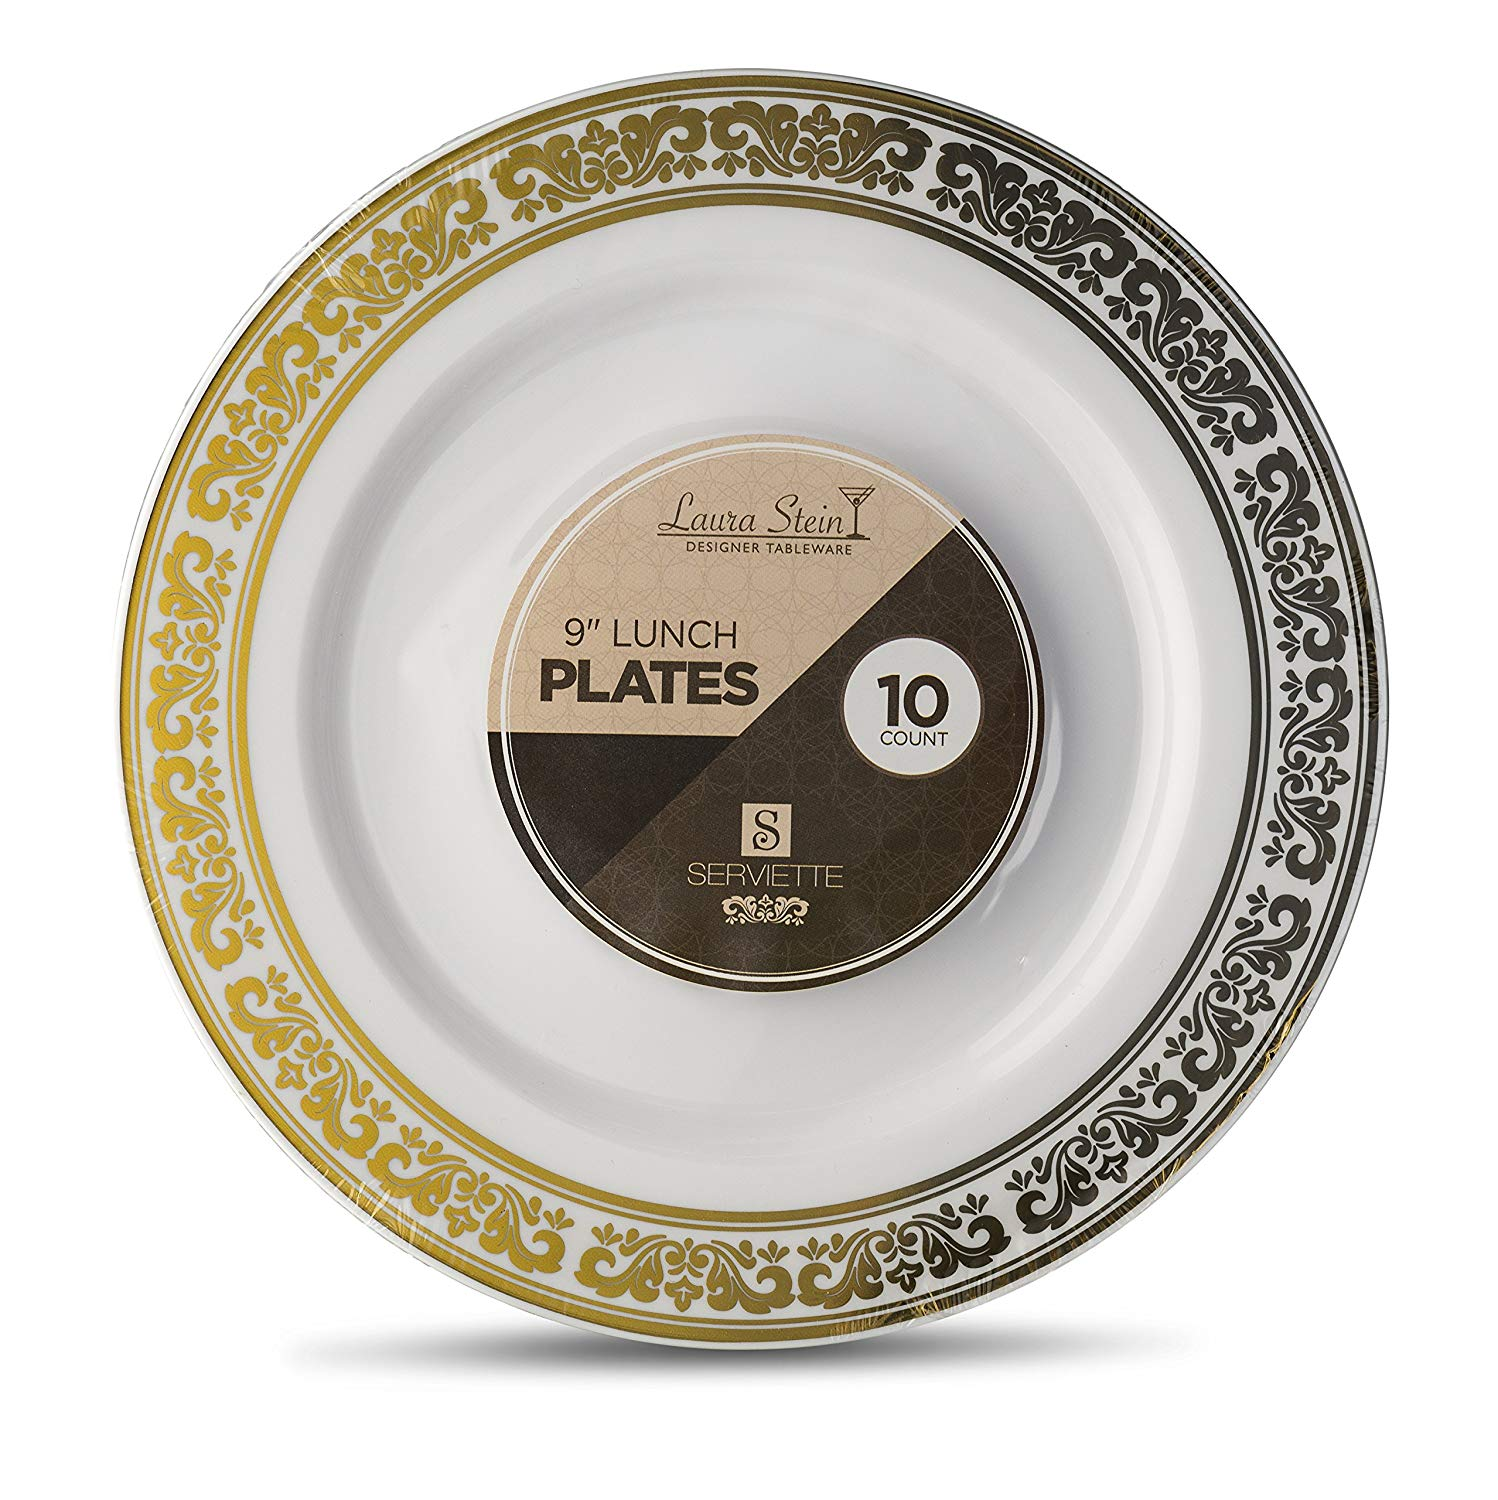 Laura Stein Designer Tableware Premium Heavyweight 9'' Inch White And Gold Rim Plastic Party & Wedding Plates Serviette Series Disposable Dishes Pack of 20 Plates